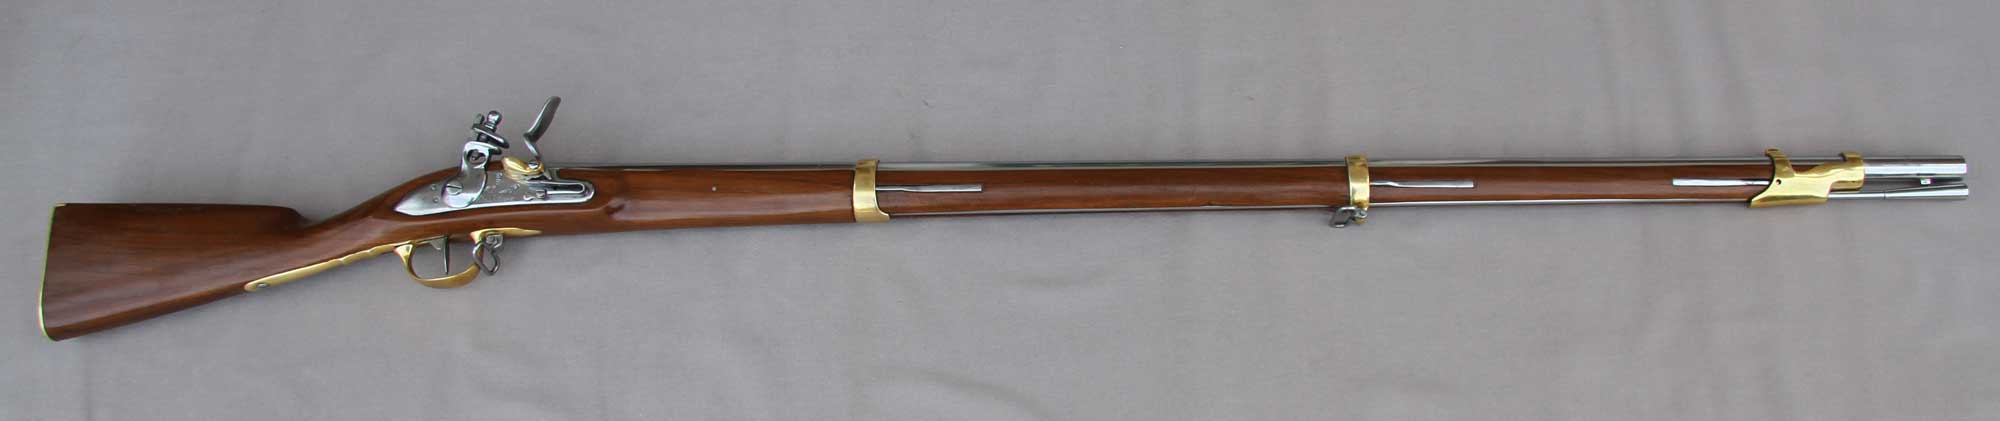 1777 Charleville musket ( brass furniture)